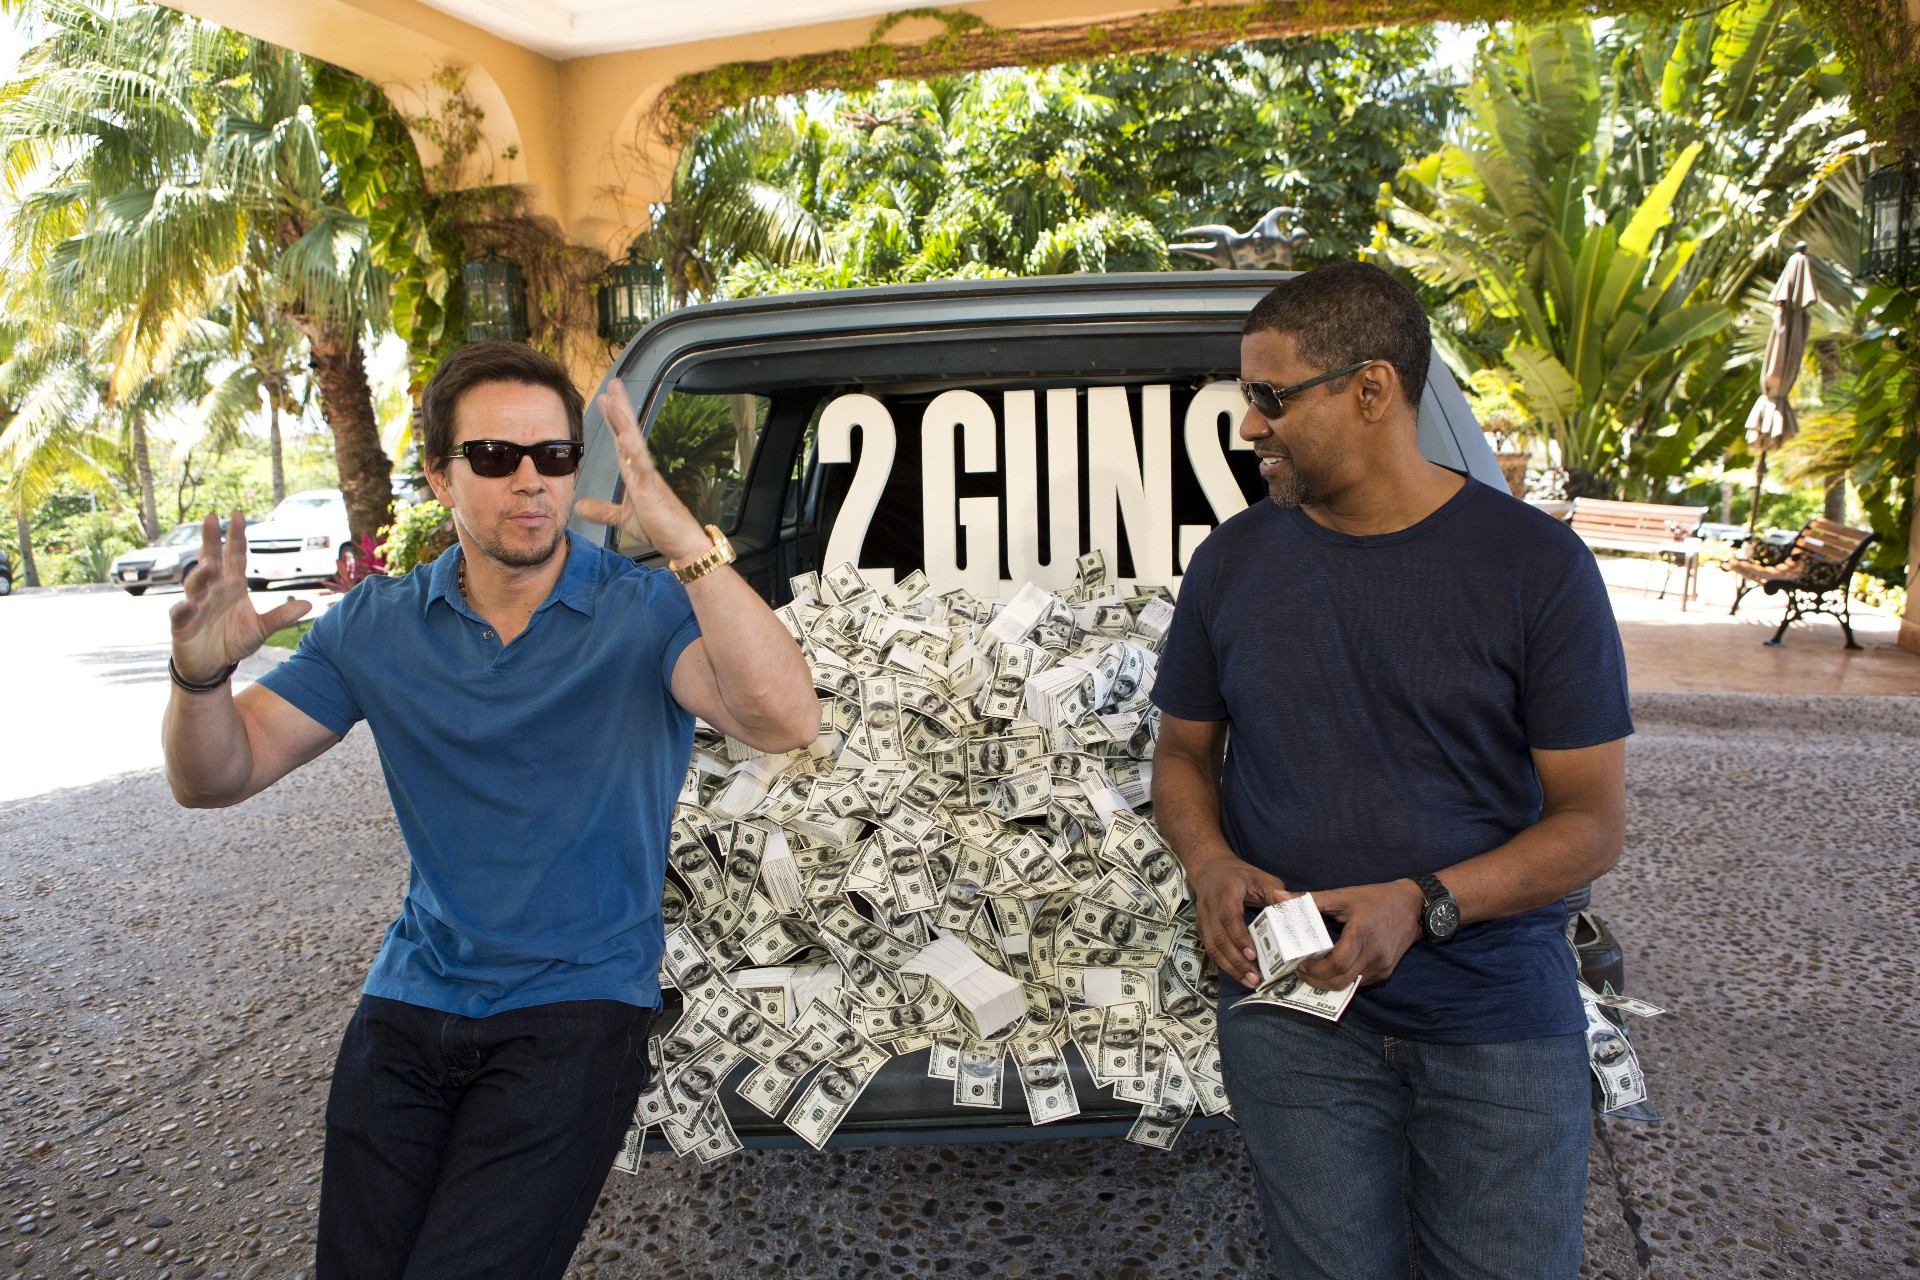 Mark Wahlberg and Denzel Washington in the movie Two guns (2 guns)